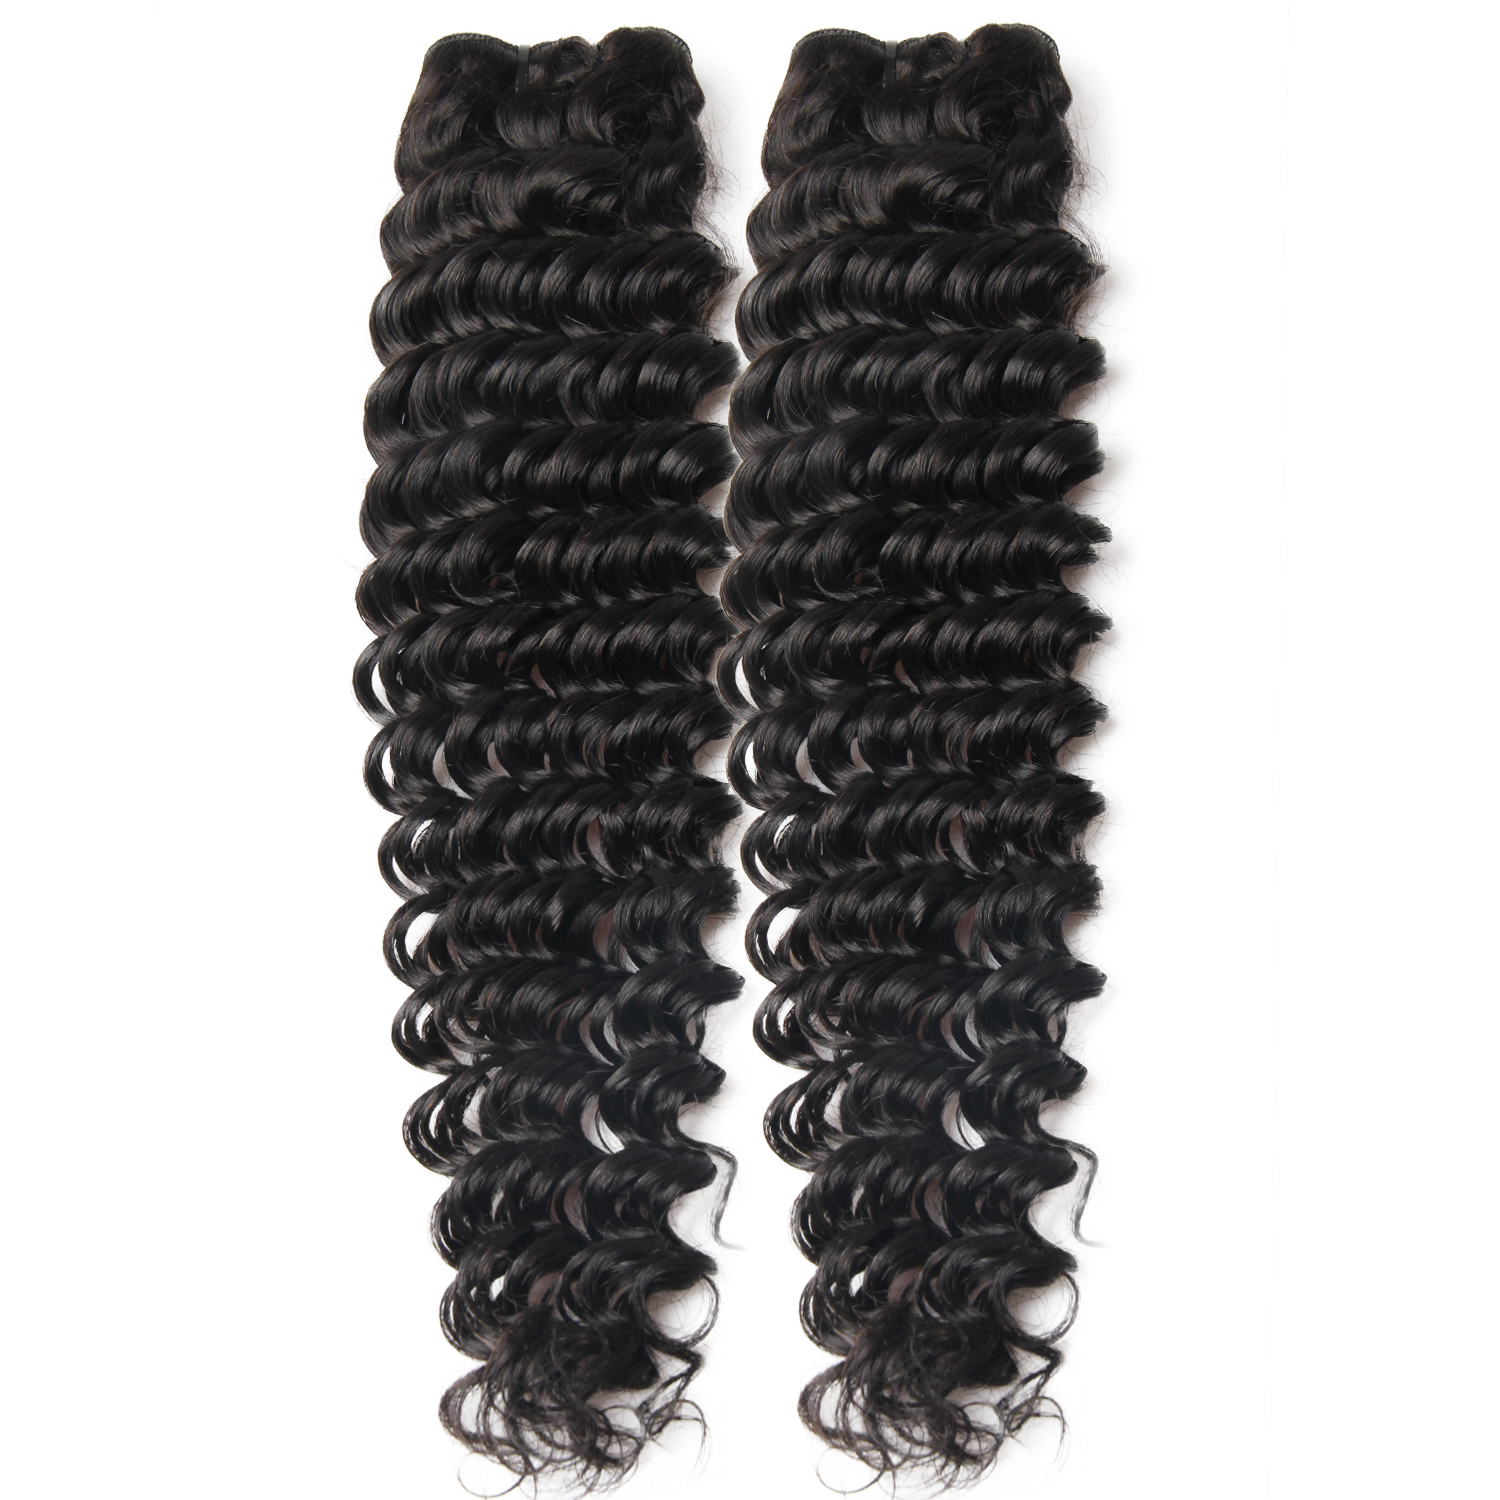 Double drawn deep <strong>curly</strong> bundles, <strong>malaysian</strong> deep <strong>curly</strong> human <strong>hair</strong> <strong>weave</strong> with closure